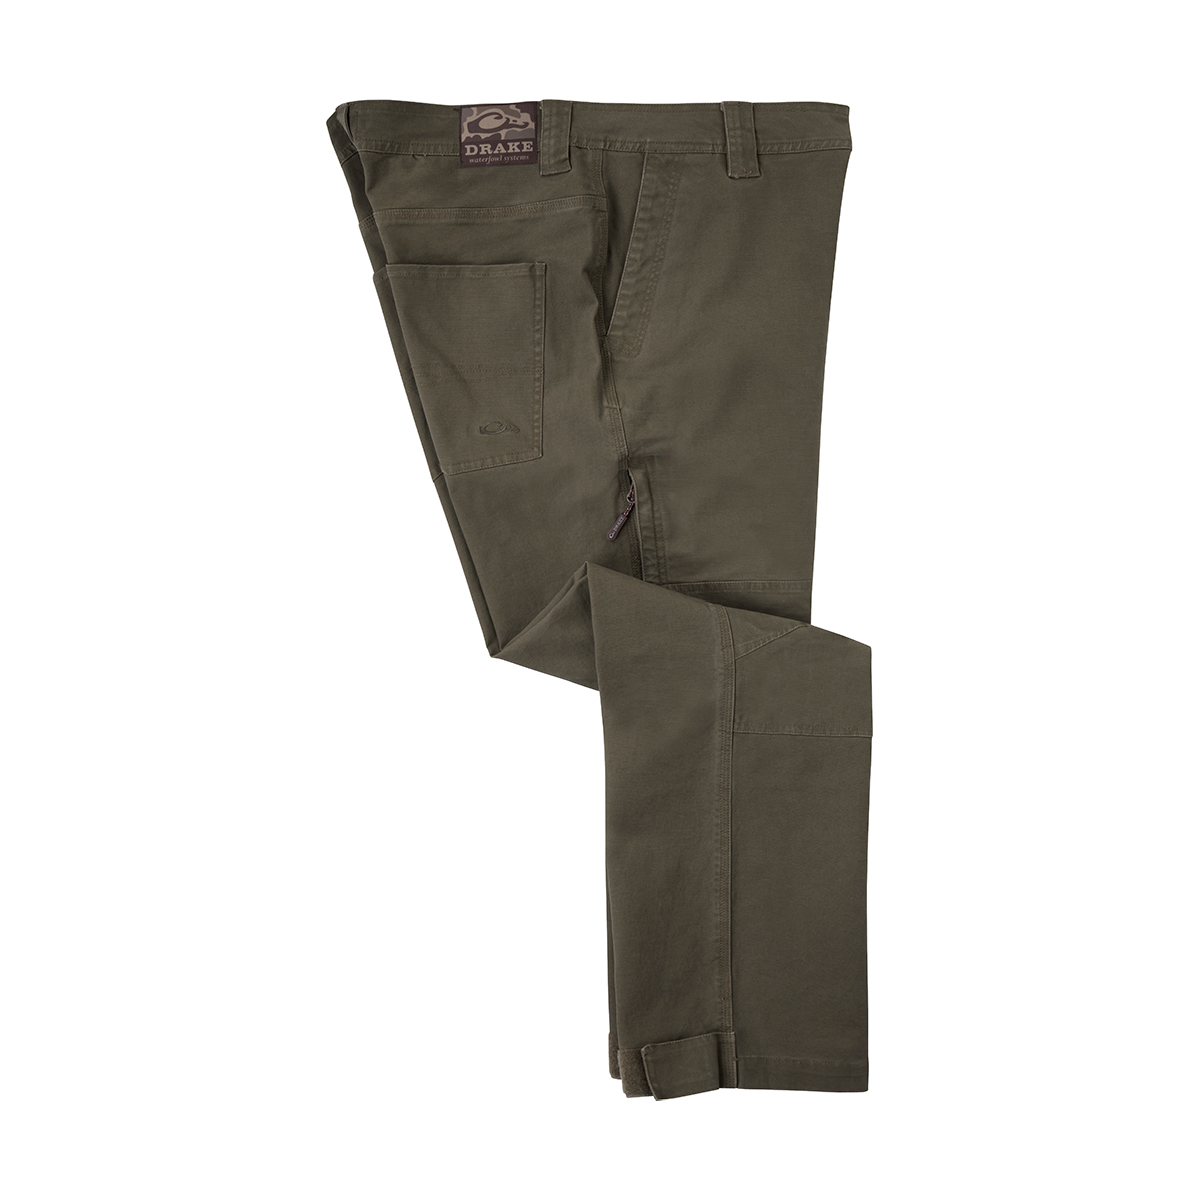 Olive-Drake-Waterfowl-Canvas-Waterfowlers-Pant-Big-Tall-BigCamo